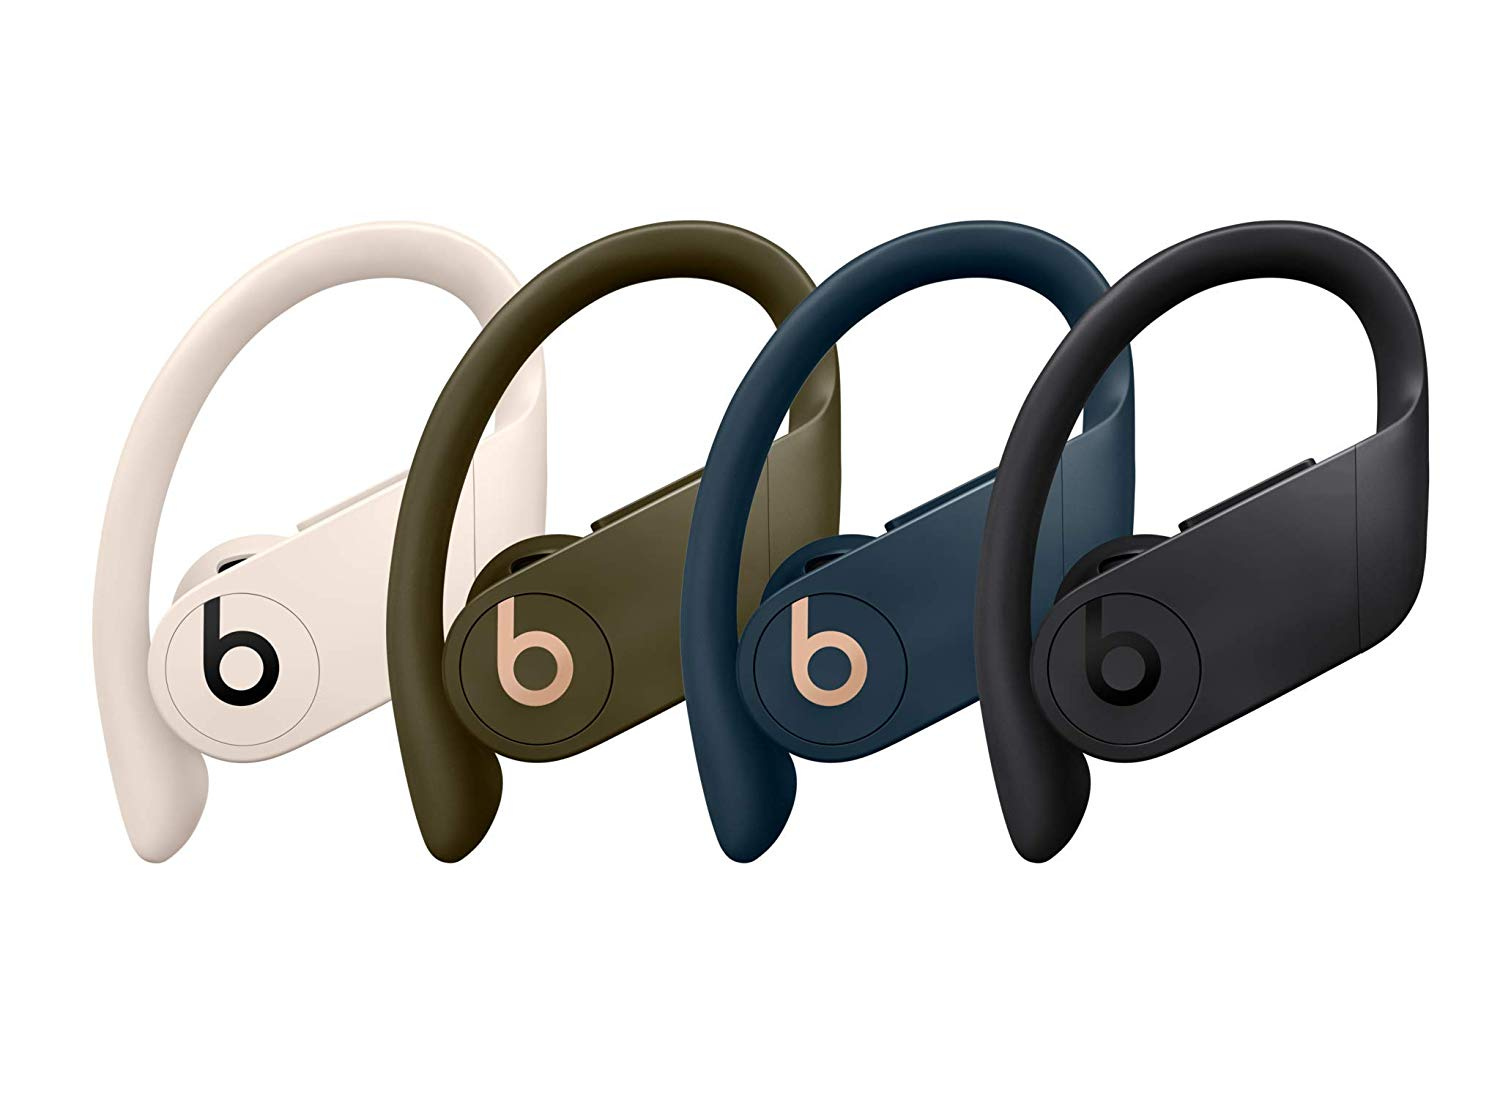 Powerbeats Pro in various colors.